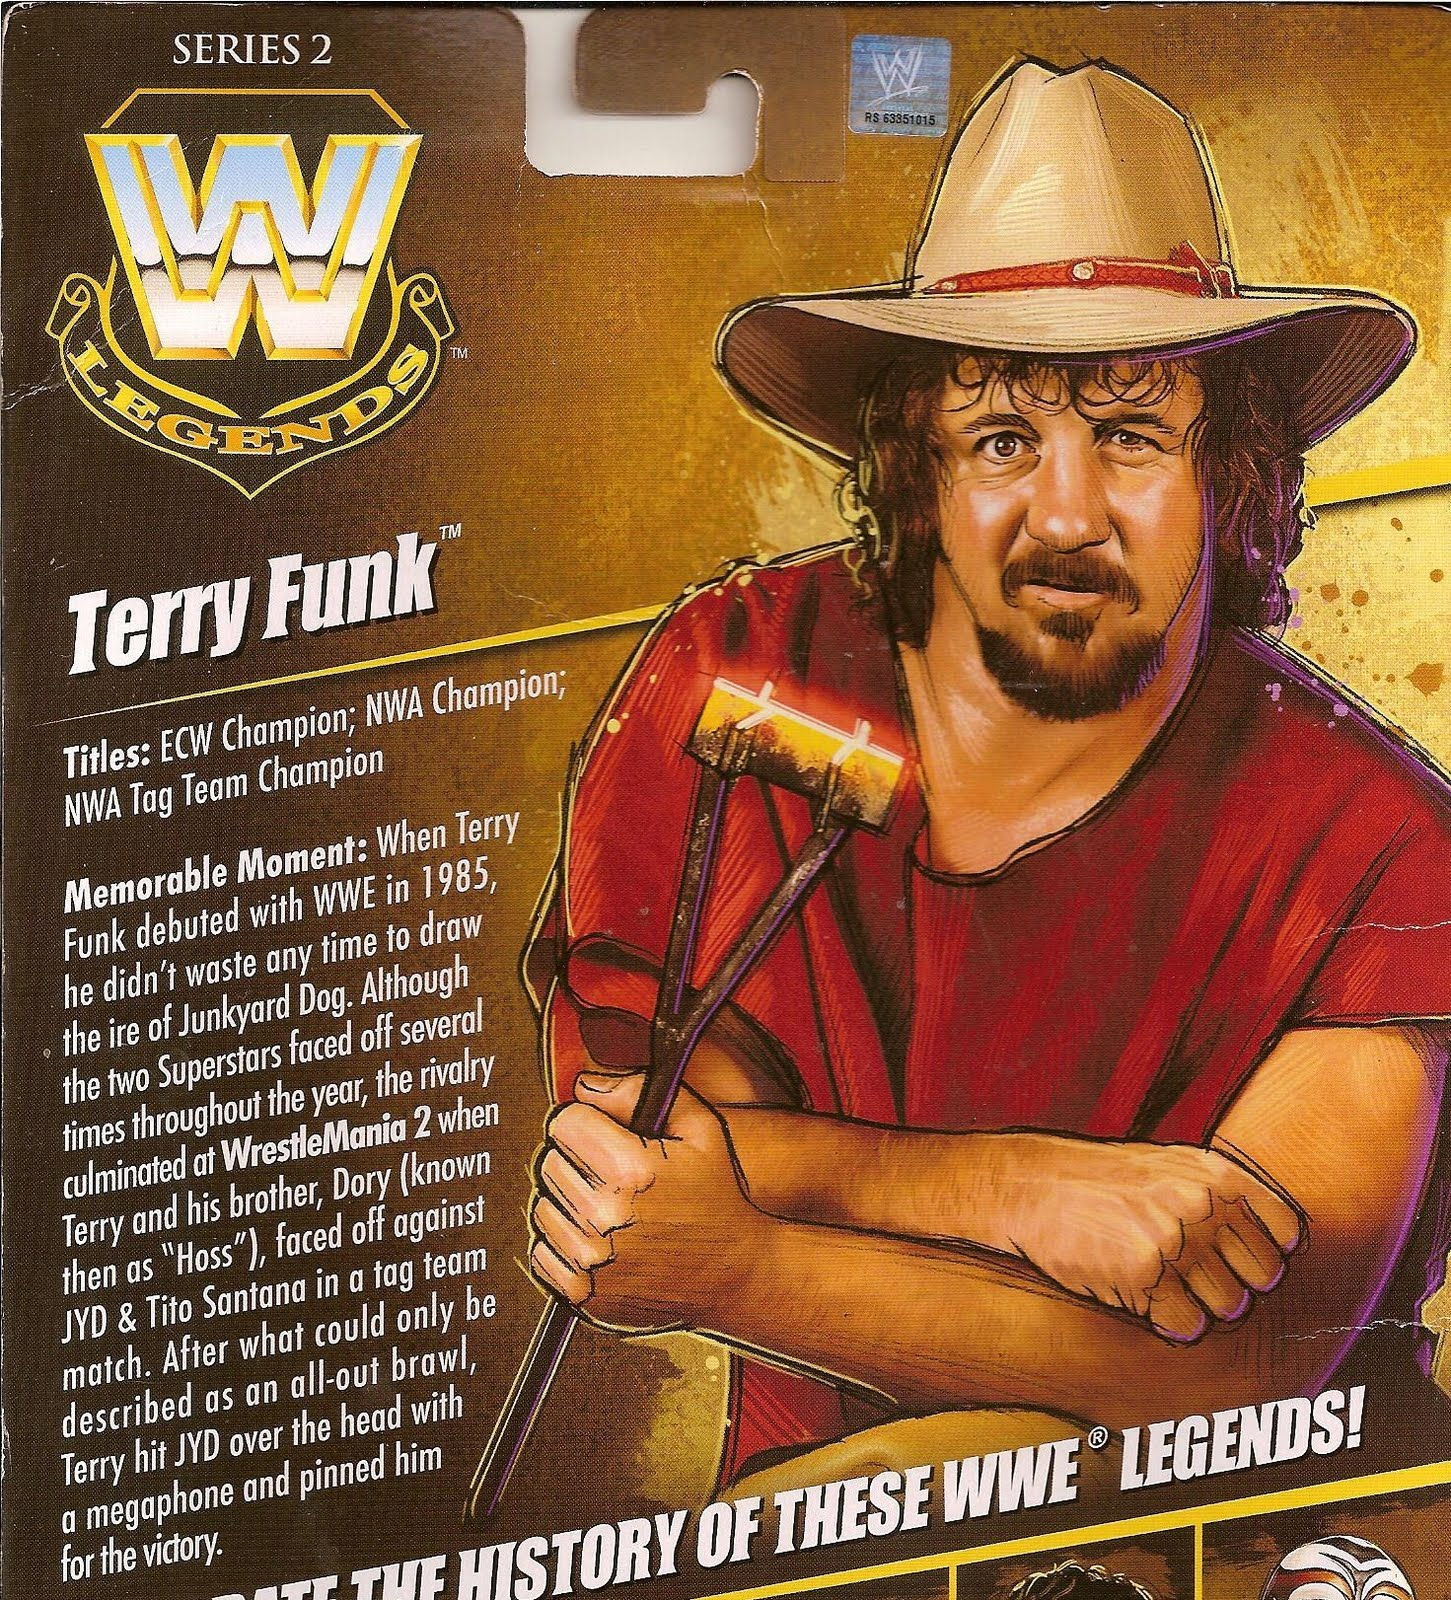 terry funk cagematchterry funk forever, terry funk vs ric flair, terry funk twitter, terry funk bret hart, terry funk piledriver, terry funk promo, terry funk 2016, terry funk horse, terry funk young, terry funk gif, terry funk desperado, terry funk and cactus jack, terry funk cagematch, terry funk theme song, terry funk wwe, terry funk theme, terry funk in over the top